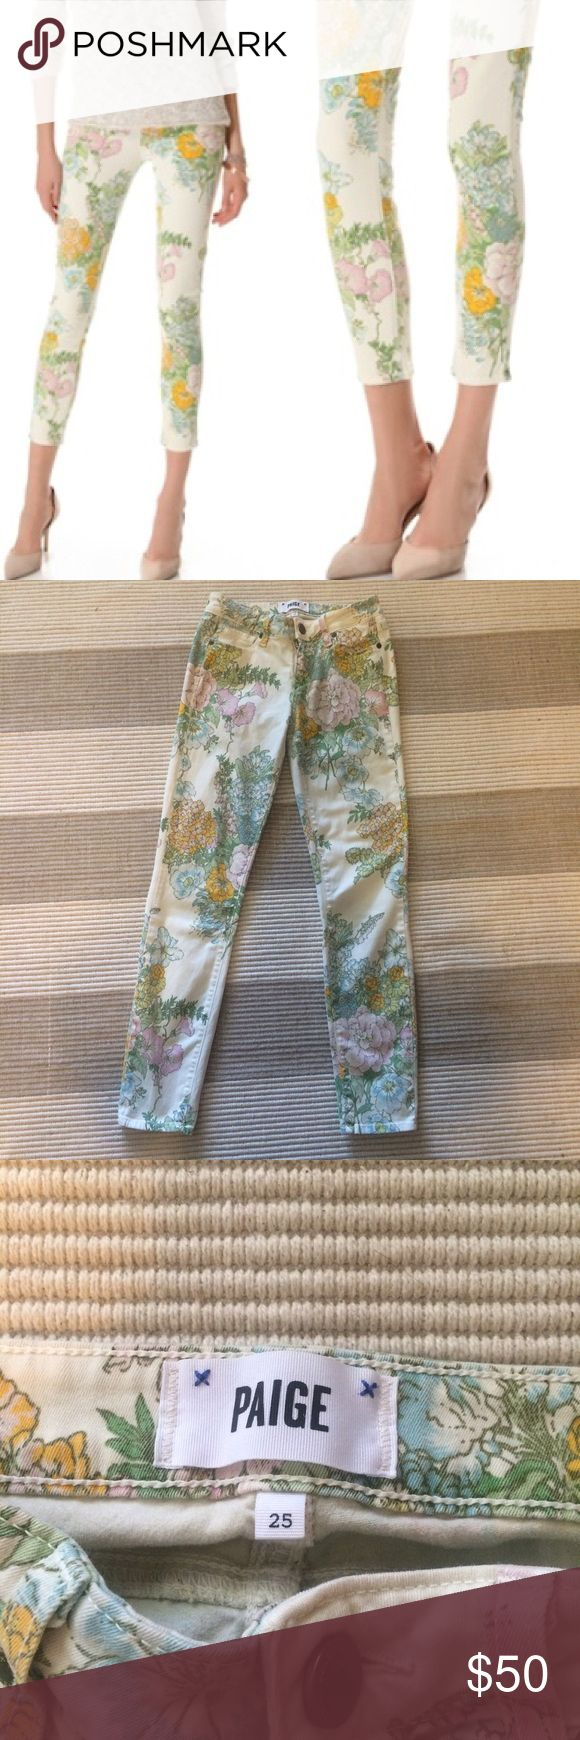 "Paige Floral Skinny Jeans/Sale Price July 4th Perfect Summer Jeans! Approx 27"" long and rise is 7"". Paige Jeans Jeans Ankle & Cropped"